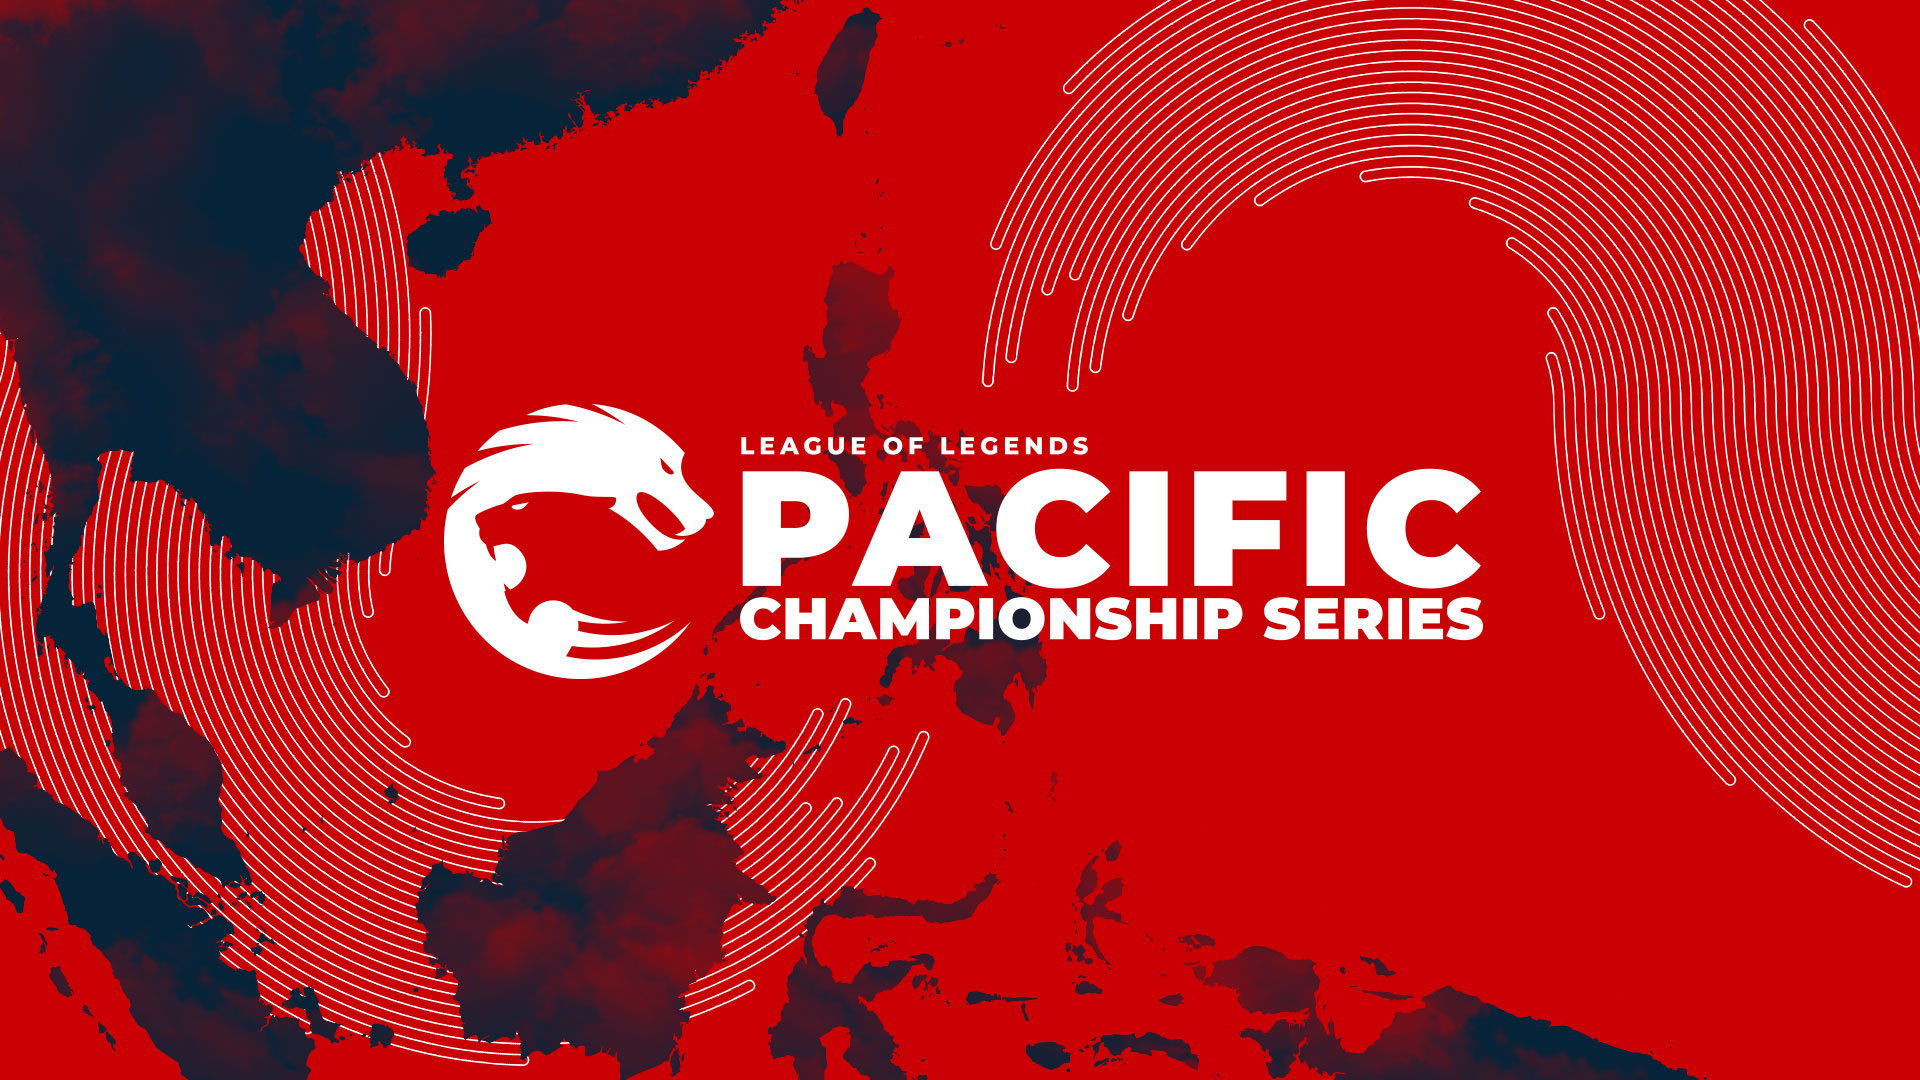 Pacific Championship Series